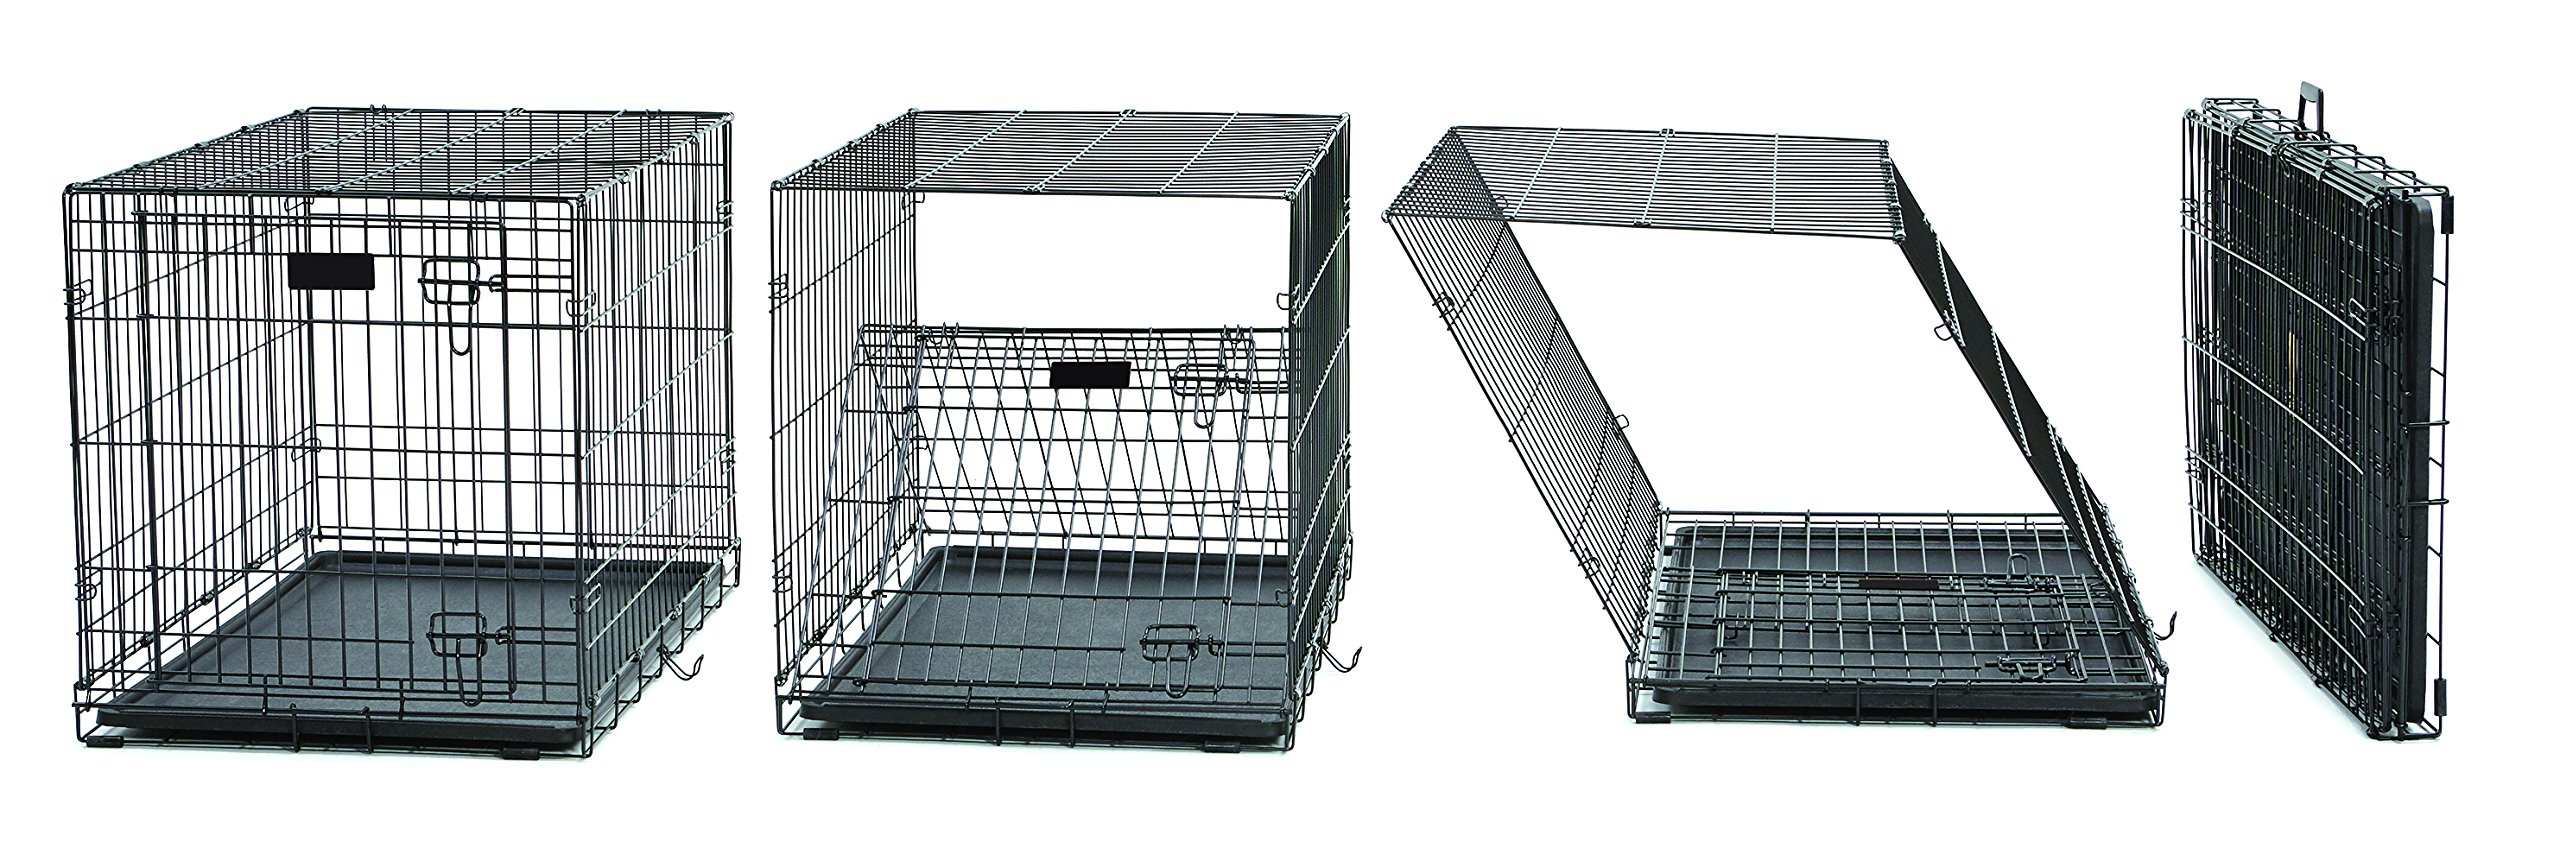 New World 30'' Folding Metal Dog Crate, Includes Leak-Proof Plastic Tray; Dog Crate Measures 30L x 19W x 21H Inches, For Medium Dog Breeds by New World Crates (Image #3)